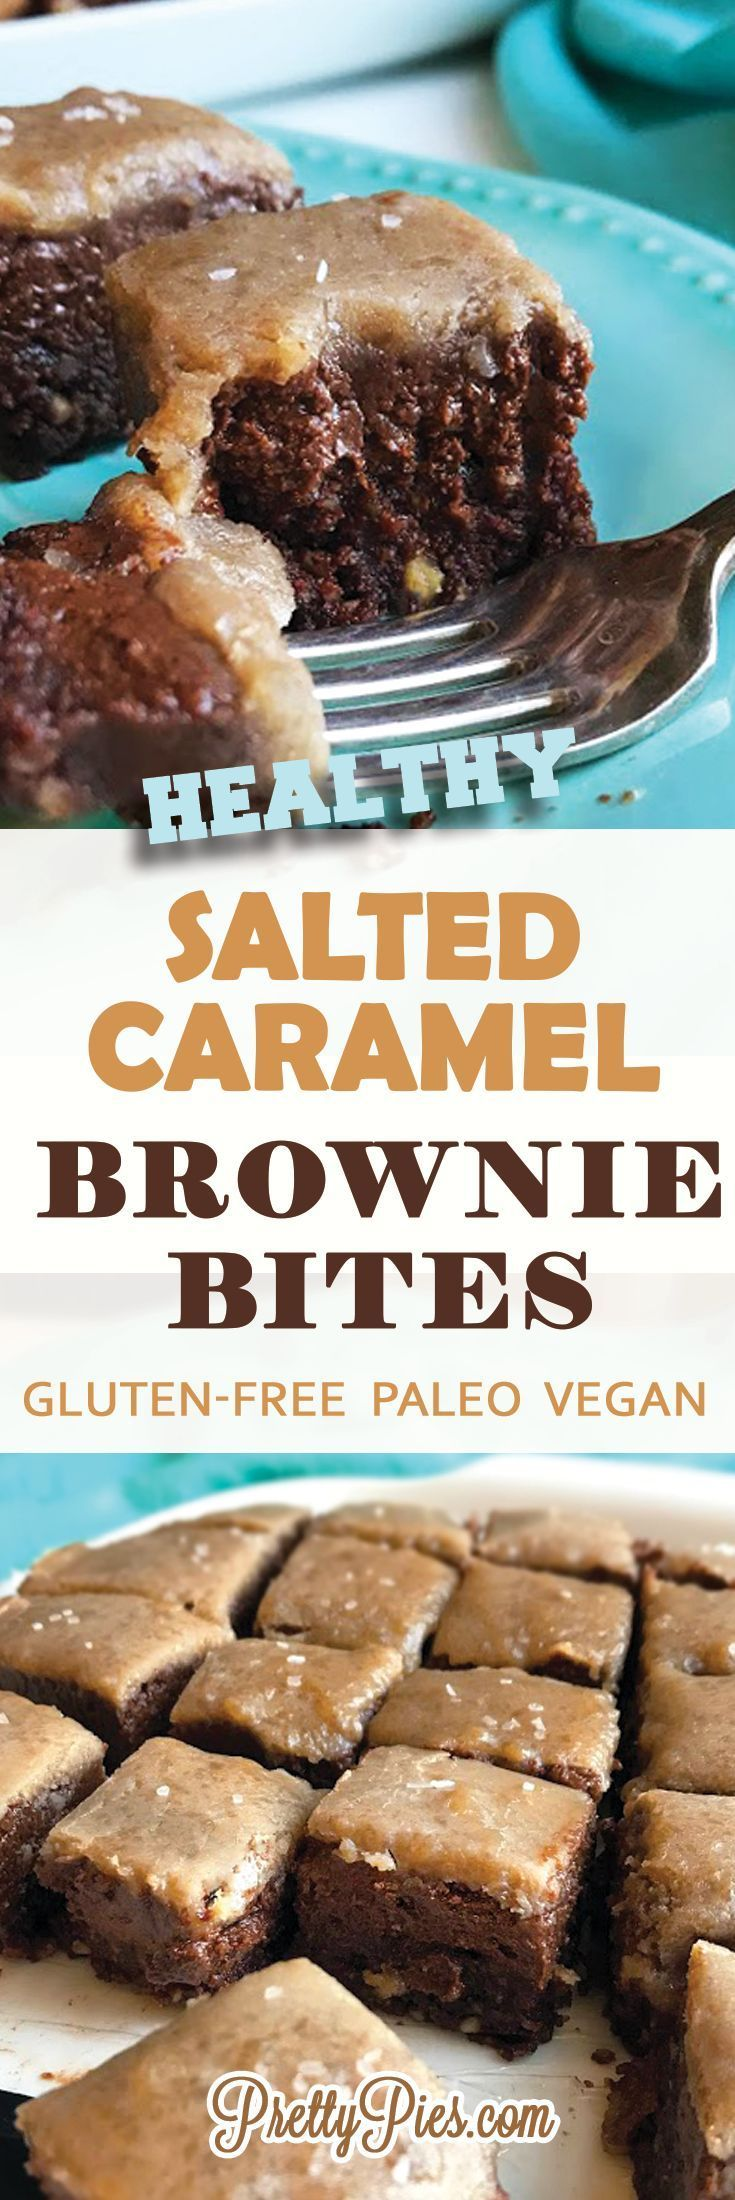 Calories In Brownie Bites Whole Foods